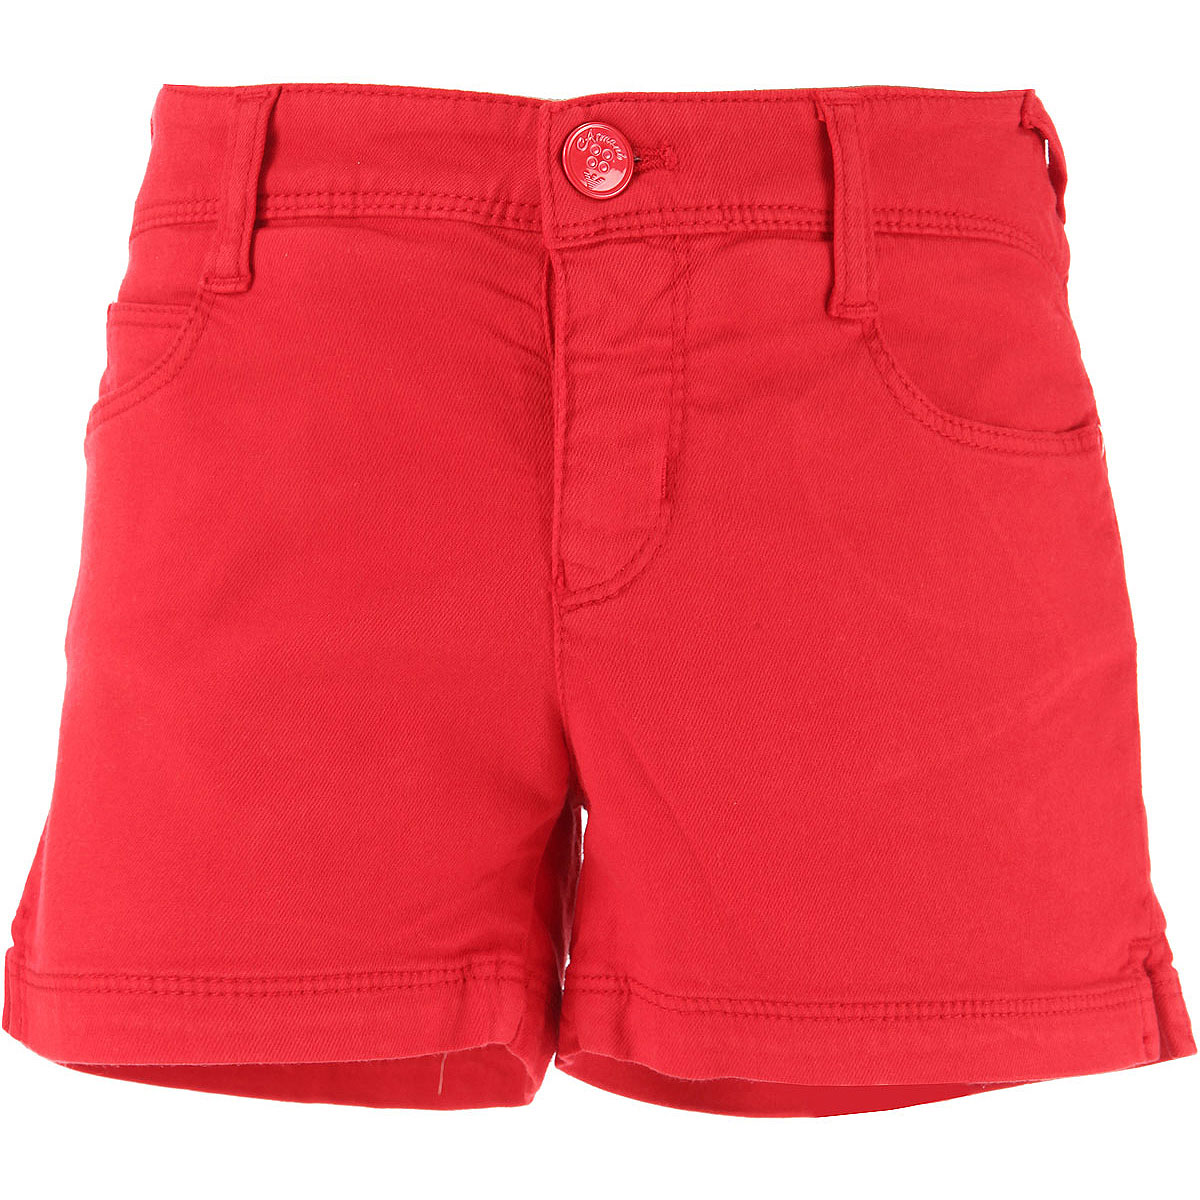 Image of Emporio Armani Kids Shorts for Girls On Sale in Outlet, Red, Modal, 2017, 13Y 15Y 16Y 9Y